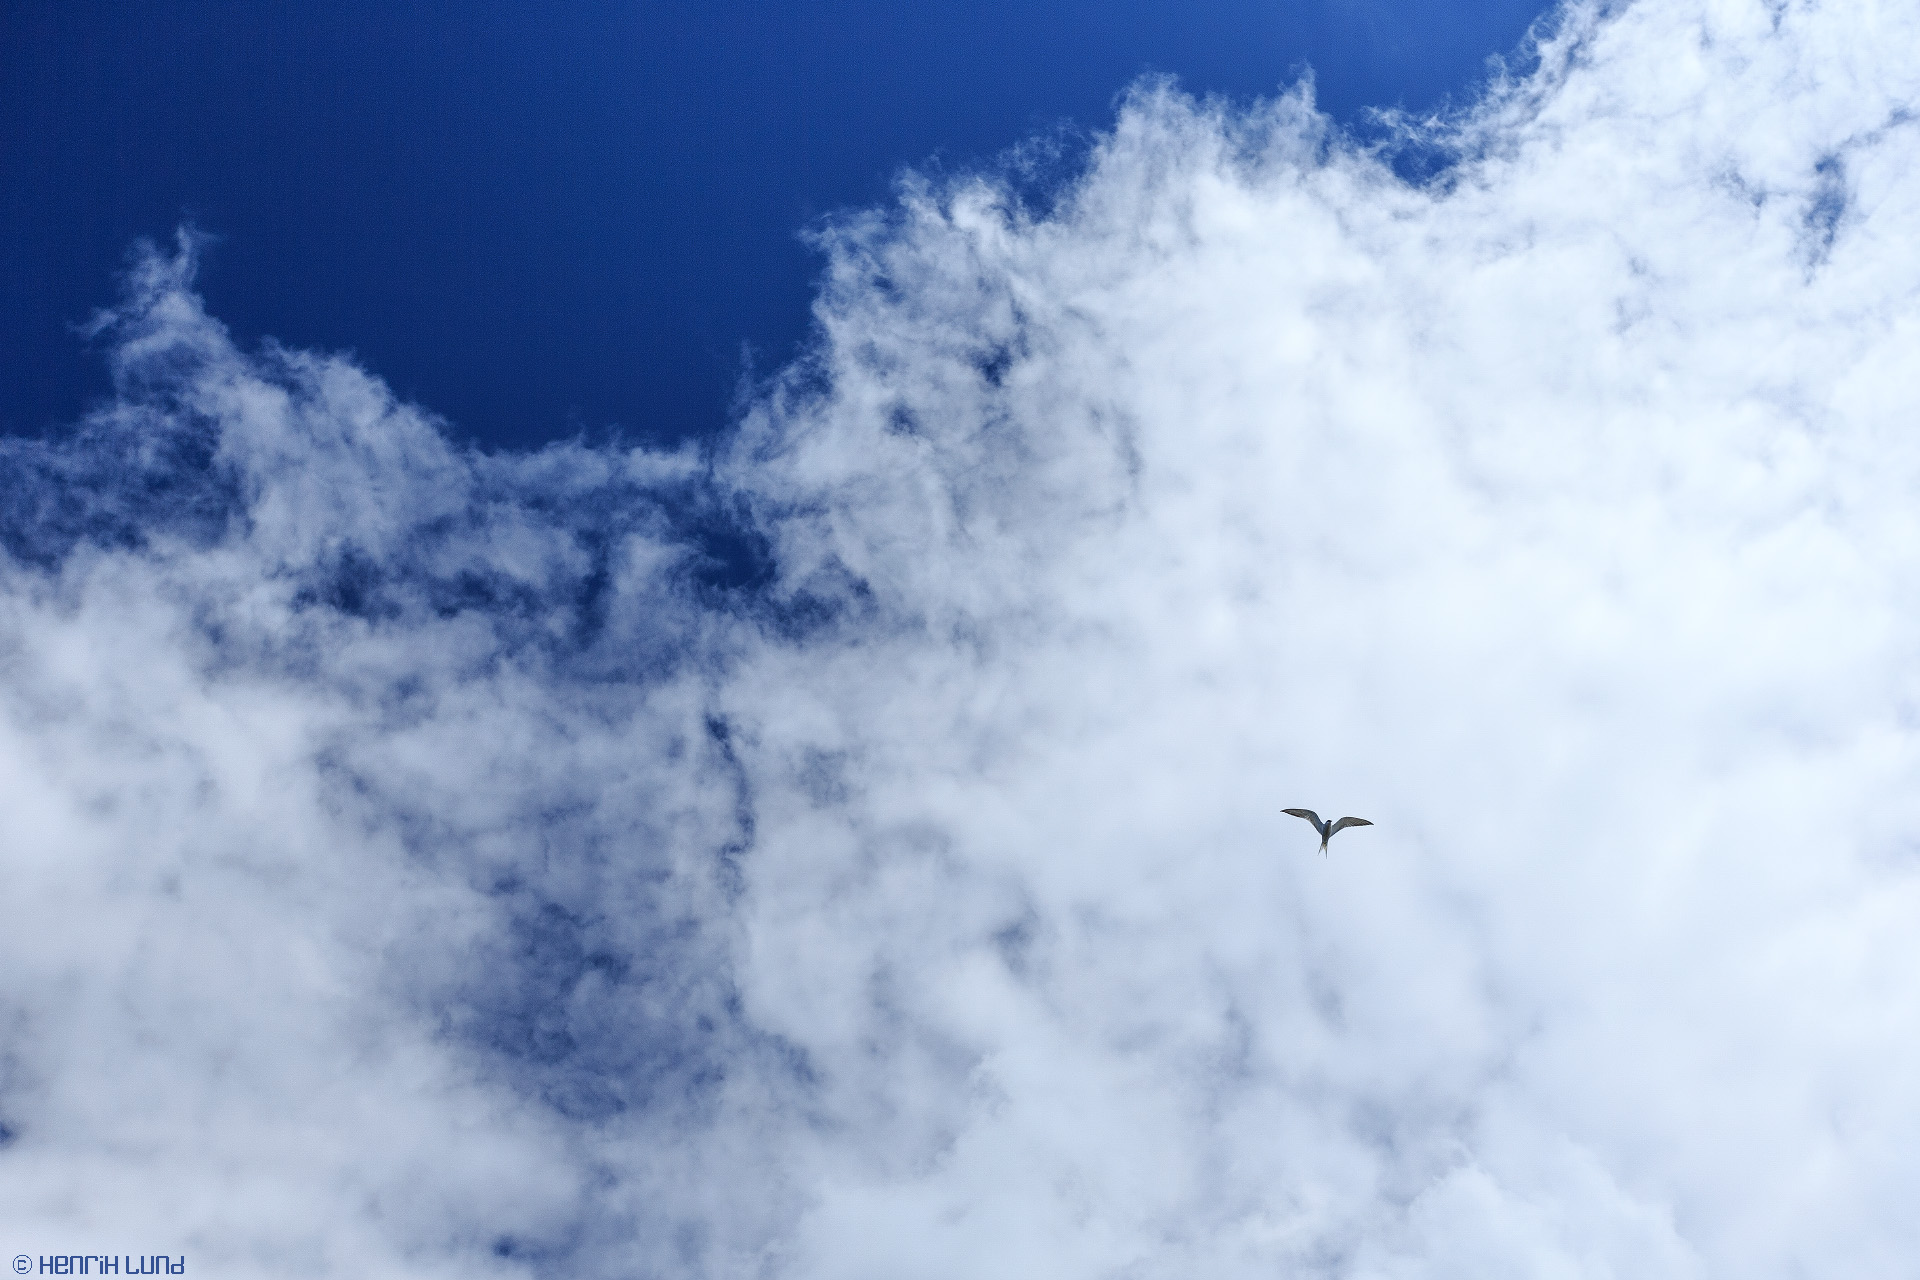 A common tern flying over against a summer sky. Stora Mistö, Raseborg, Finland, July 2013.